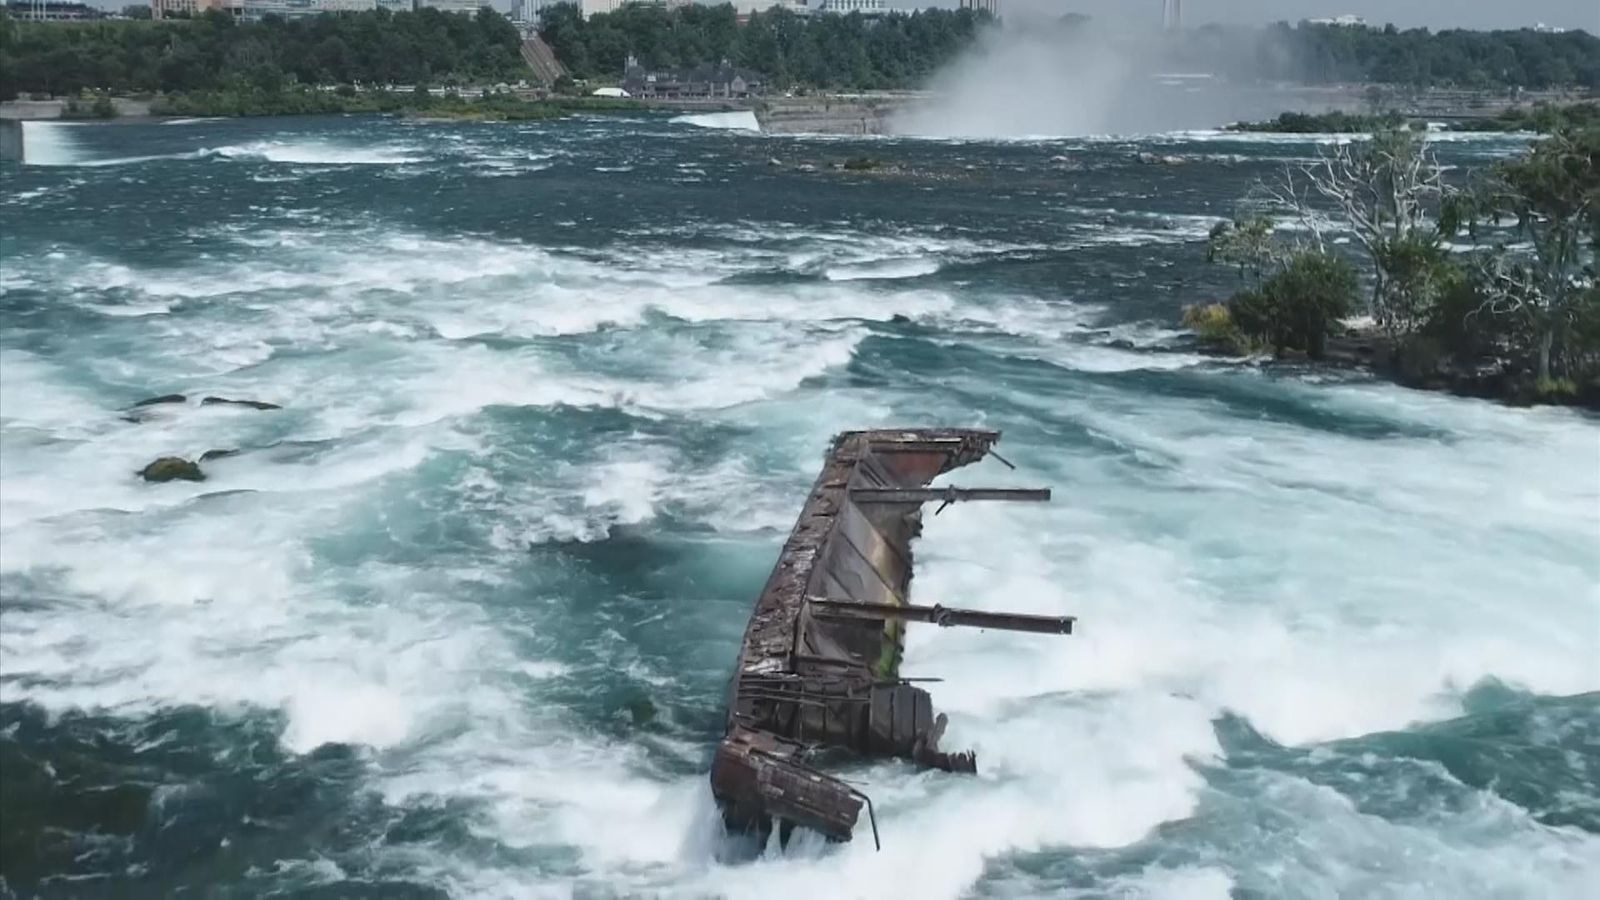 Niagara Falls: Barge stuck in rapids for 100 years finally moved by storm